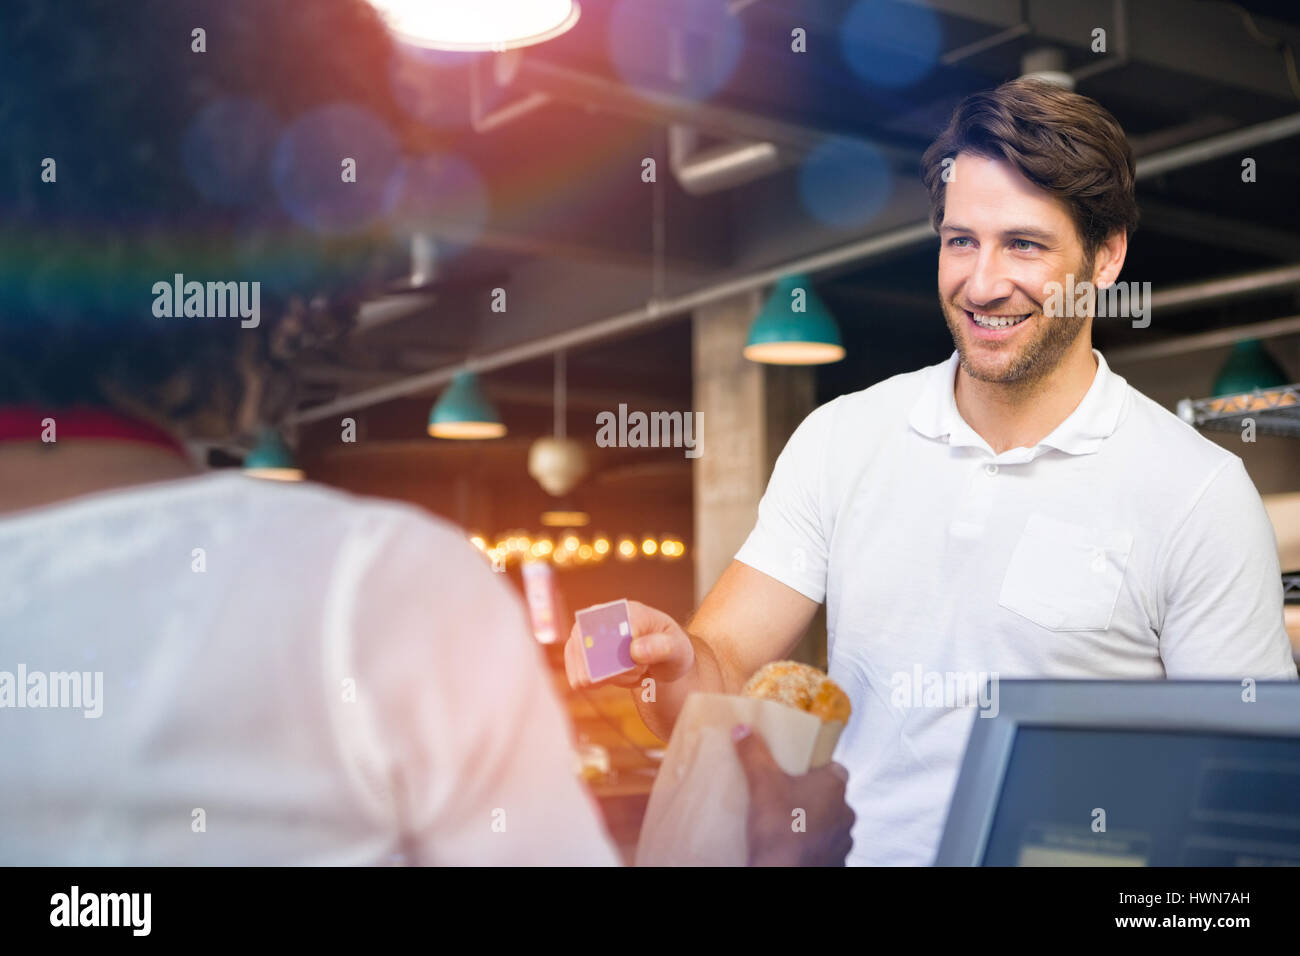 Graphic image of flare against happy customer paying by credit card for bread - Stock Image